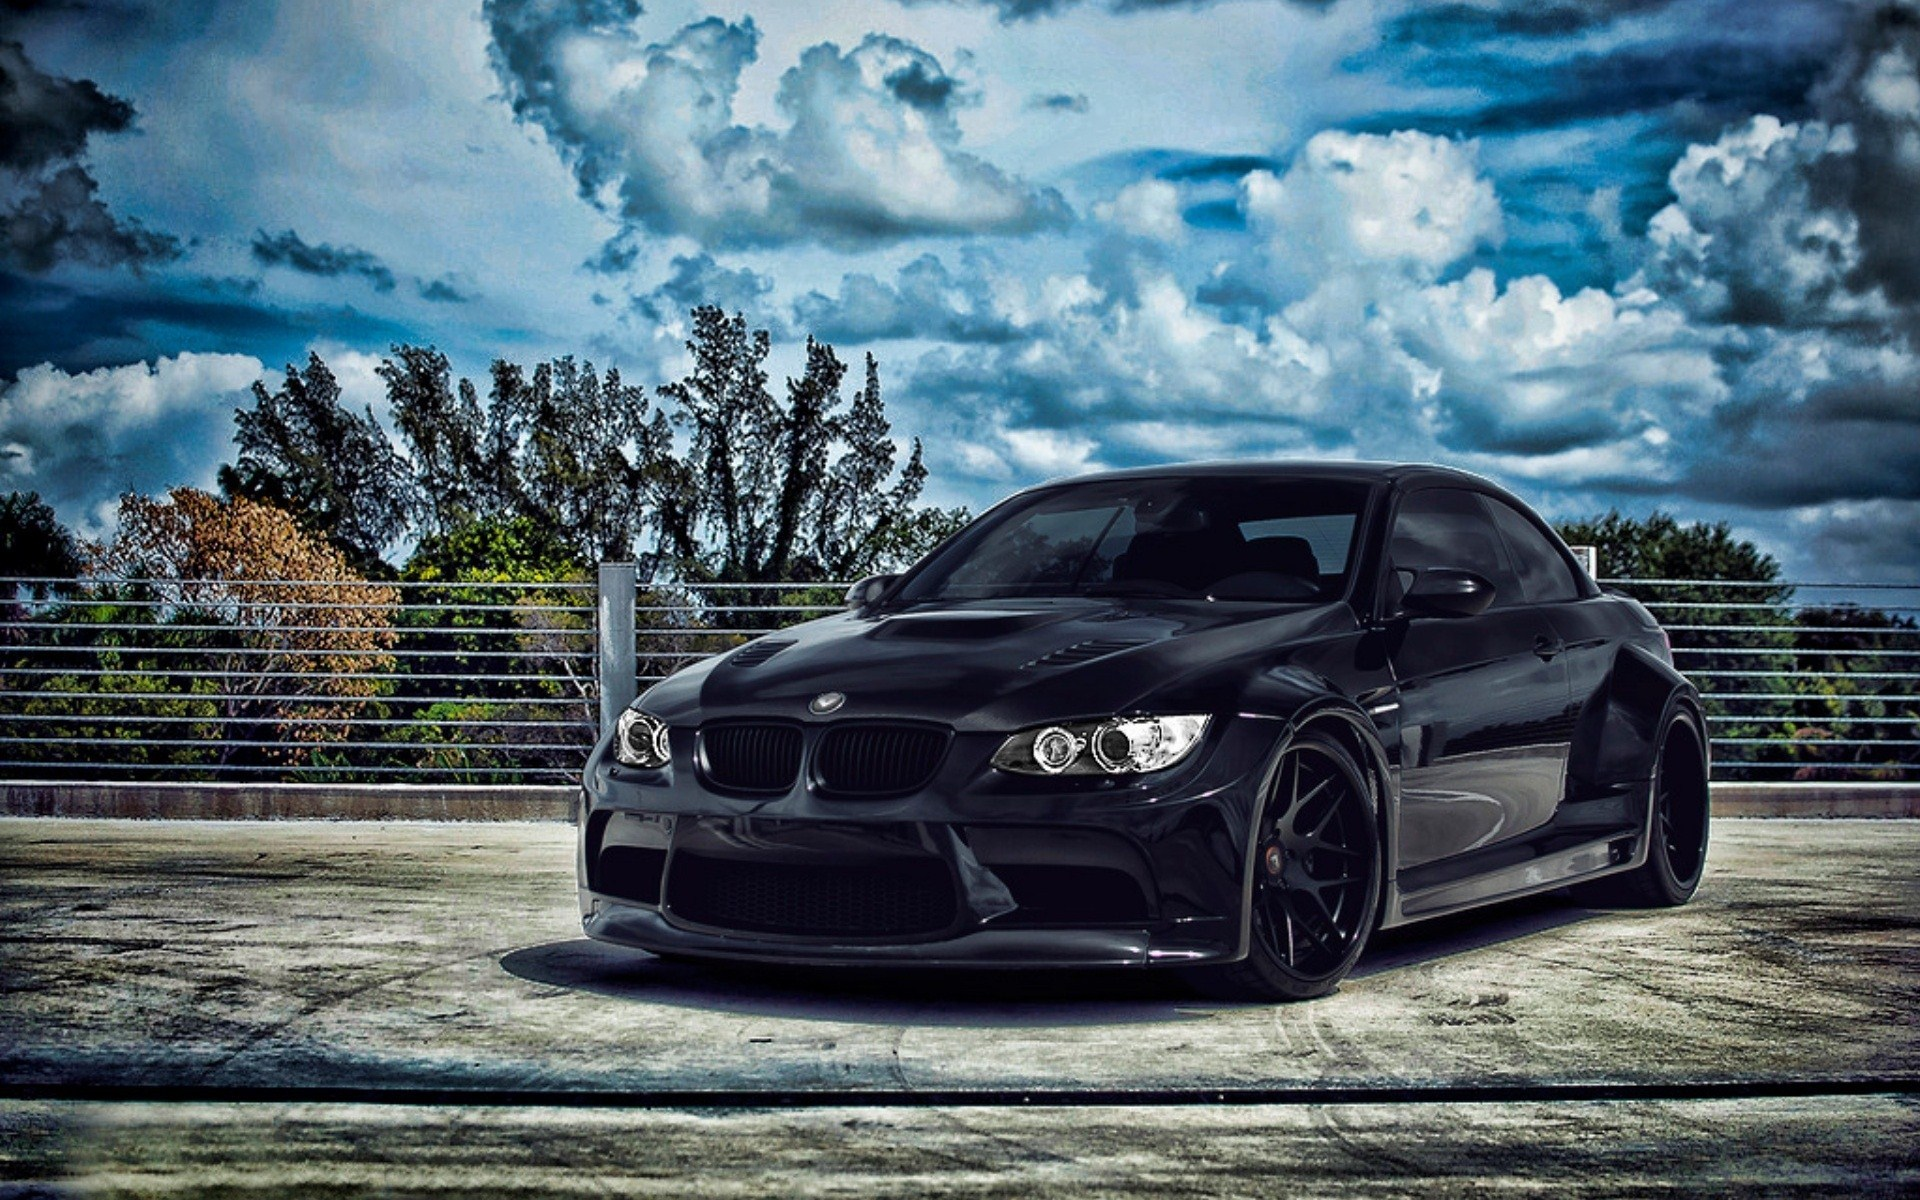 bmw m3 wallpaper 09 - [1920x1200]